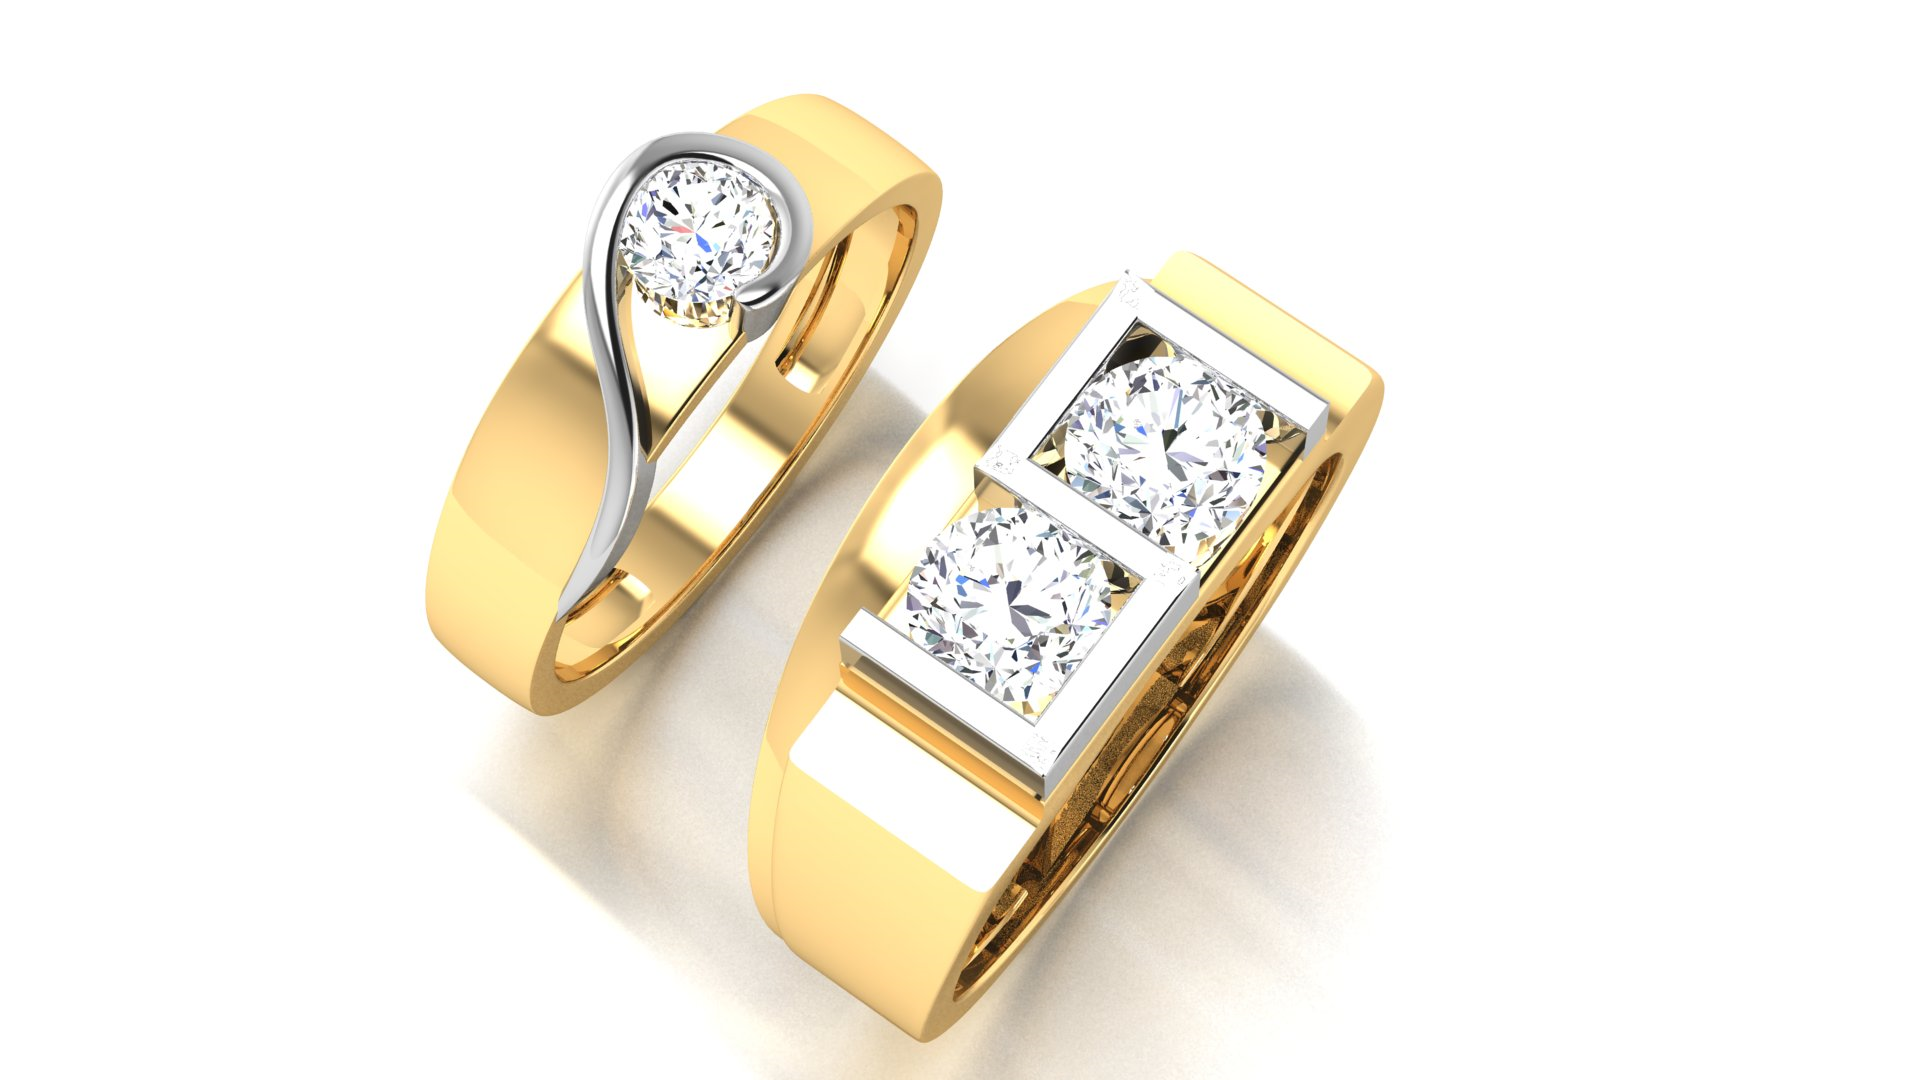 YG/WG Metal Gold Couple Ring